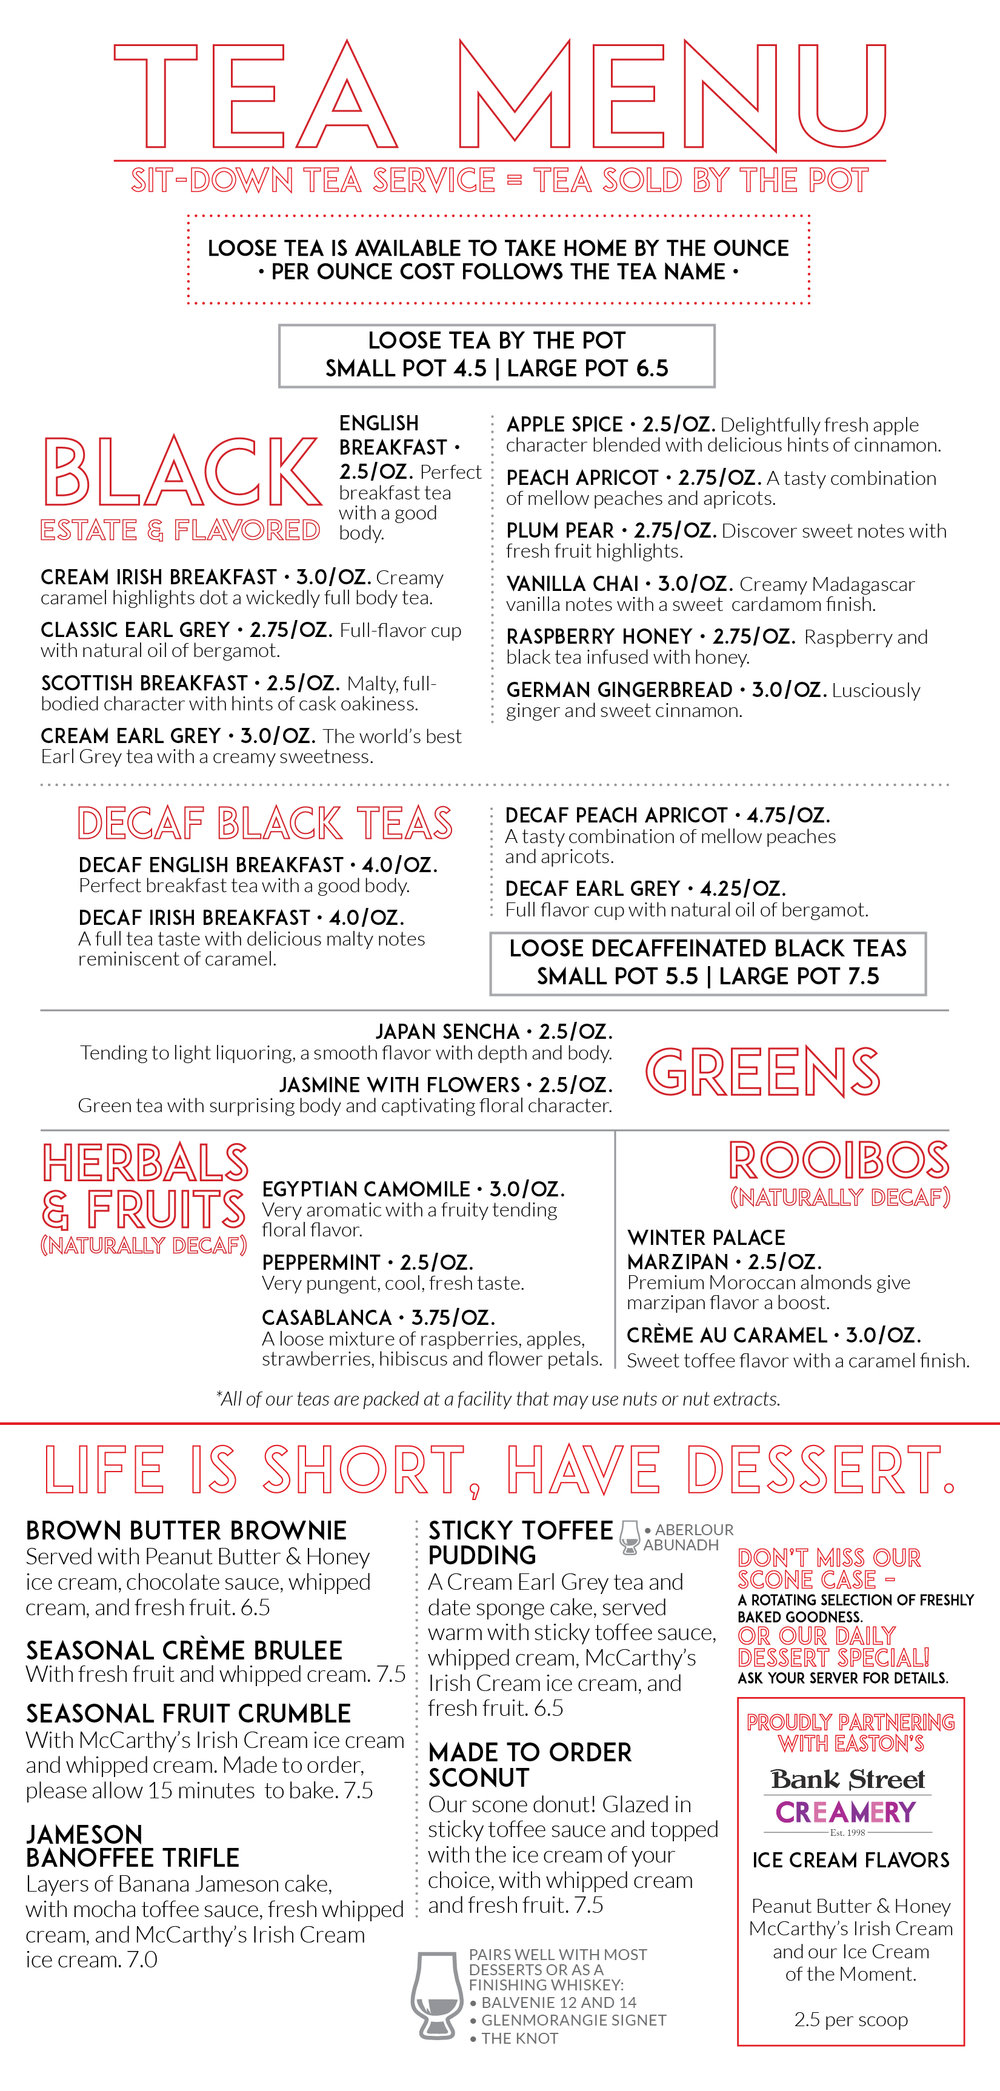 McCARTHY'S  LOOSE TEA + DESSERT  MENU • 5.5 x 12  MENU INSERT  CLIENT: McCARTHY'S RED STAG PUB AND WHISKEY BAR BRIEF: Loose Tea offerings and dessert menu, sized to fit inside the main menu tri-fold. WORK: Adobe InDesign